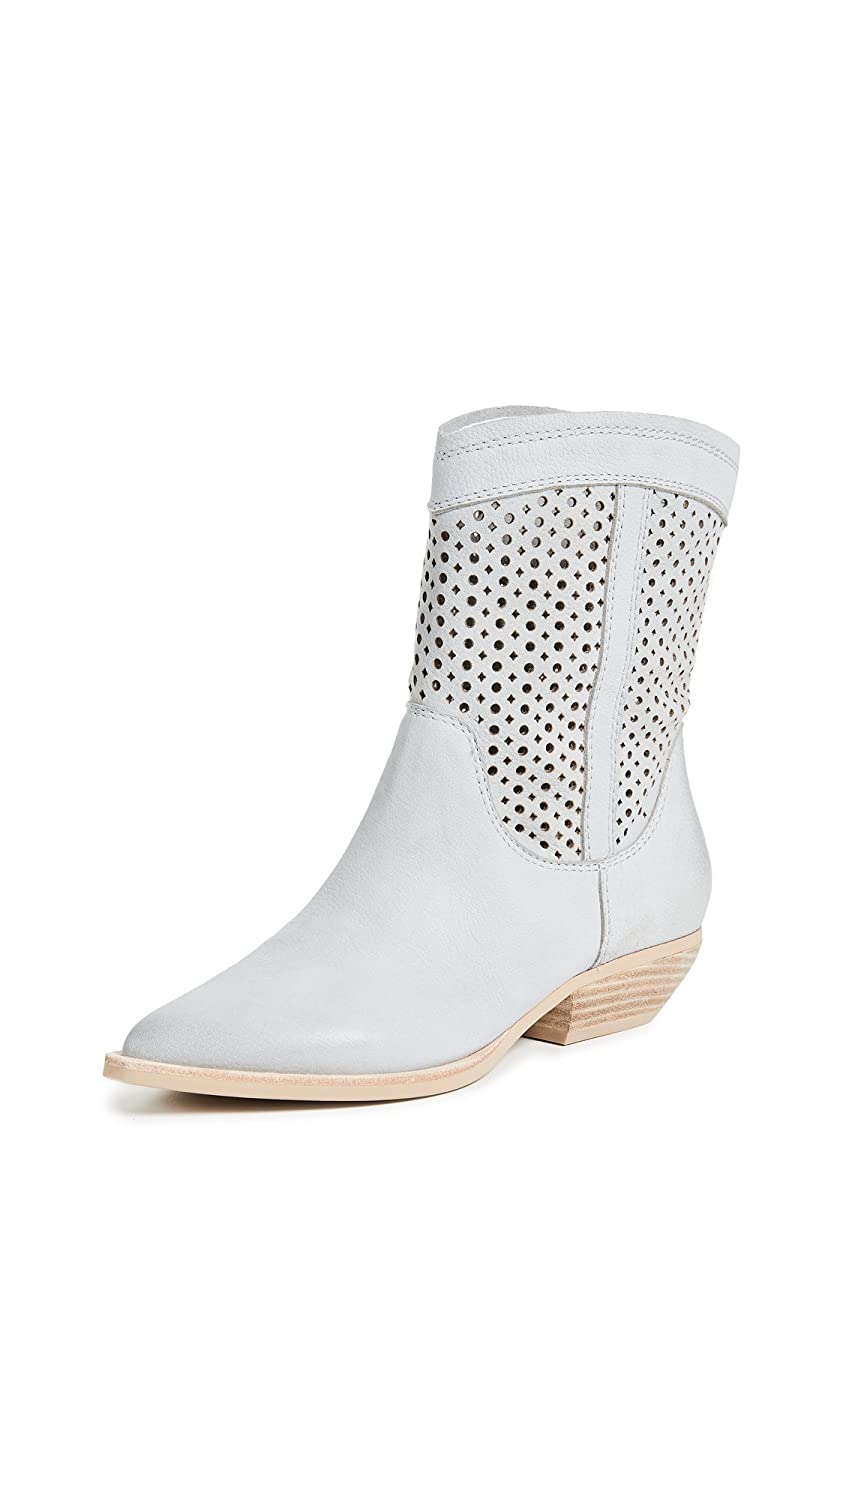 Dolce Vita Union Mid Calf Boot (Women's)